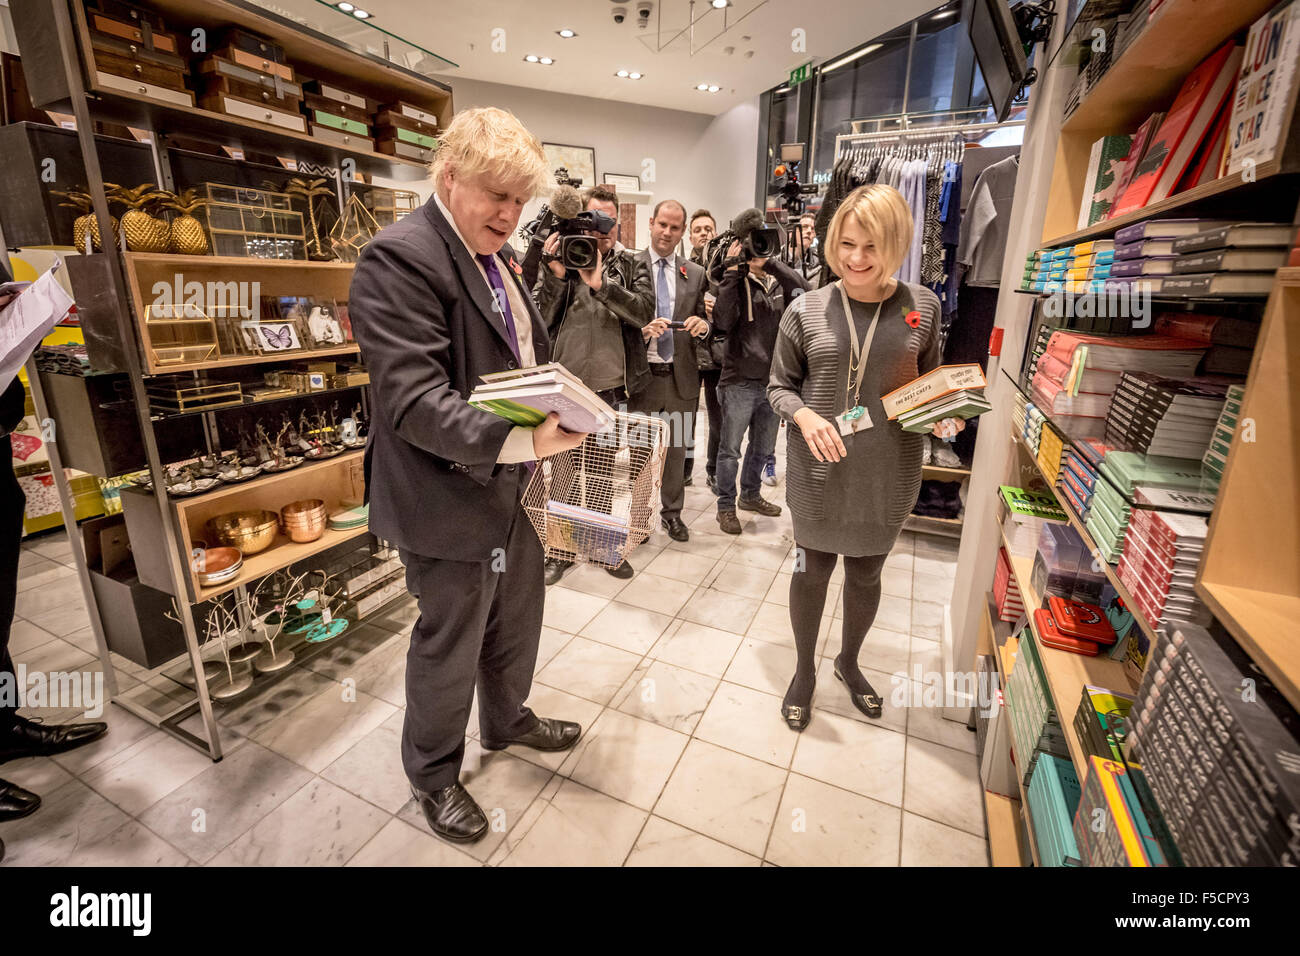 London, UK. 2nd November, 2015. Mayor Boris Johnson helps to serve customers and meets staff who are paid the Living - Stock Image